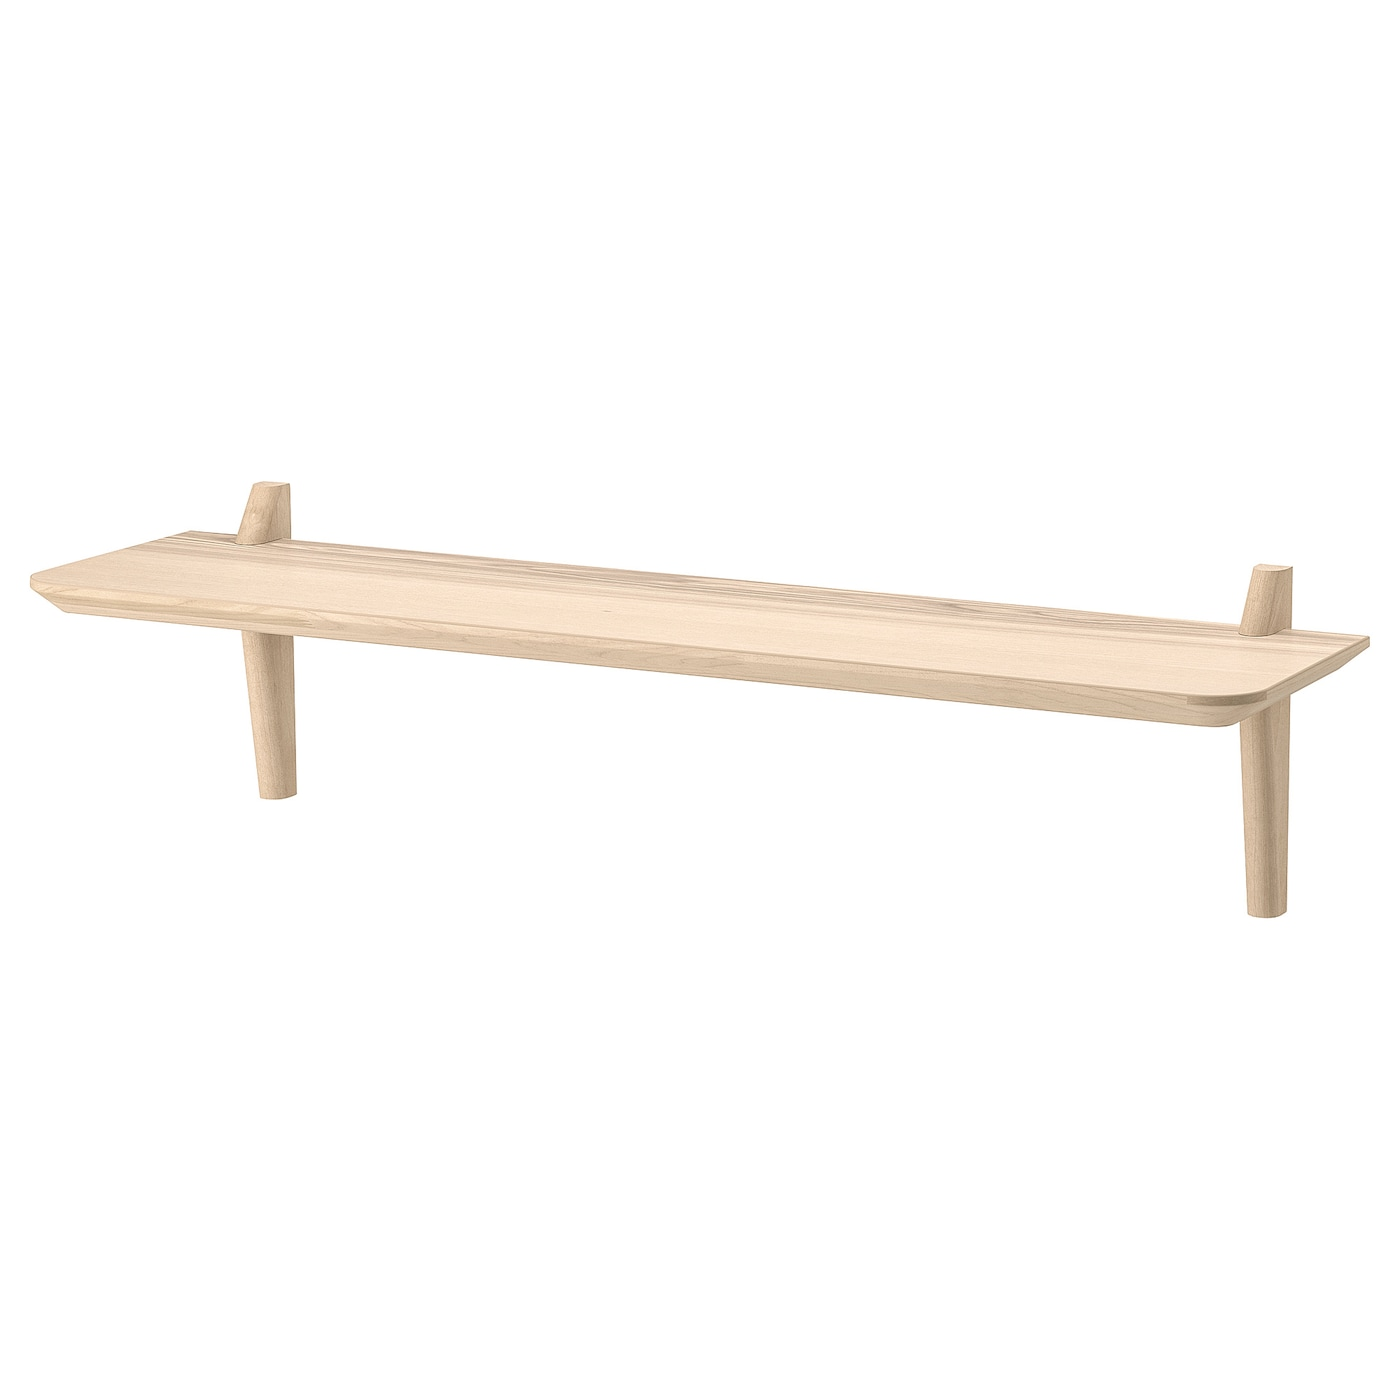 IKEA LISABO wall shelf